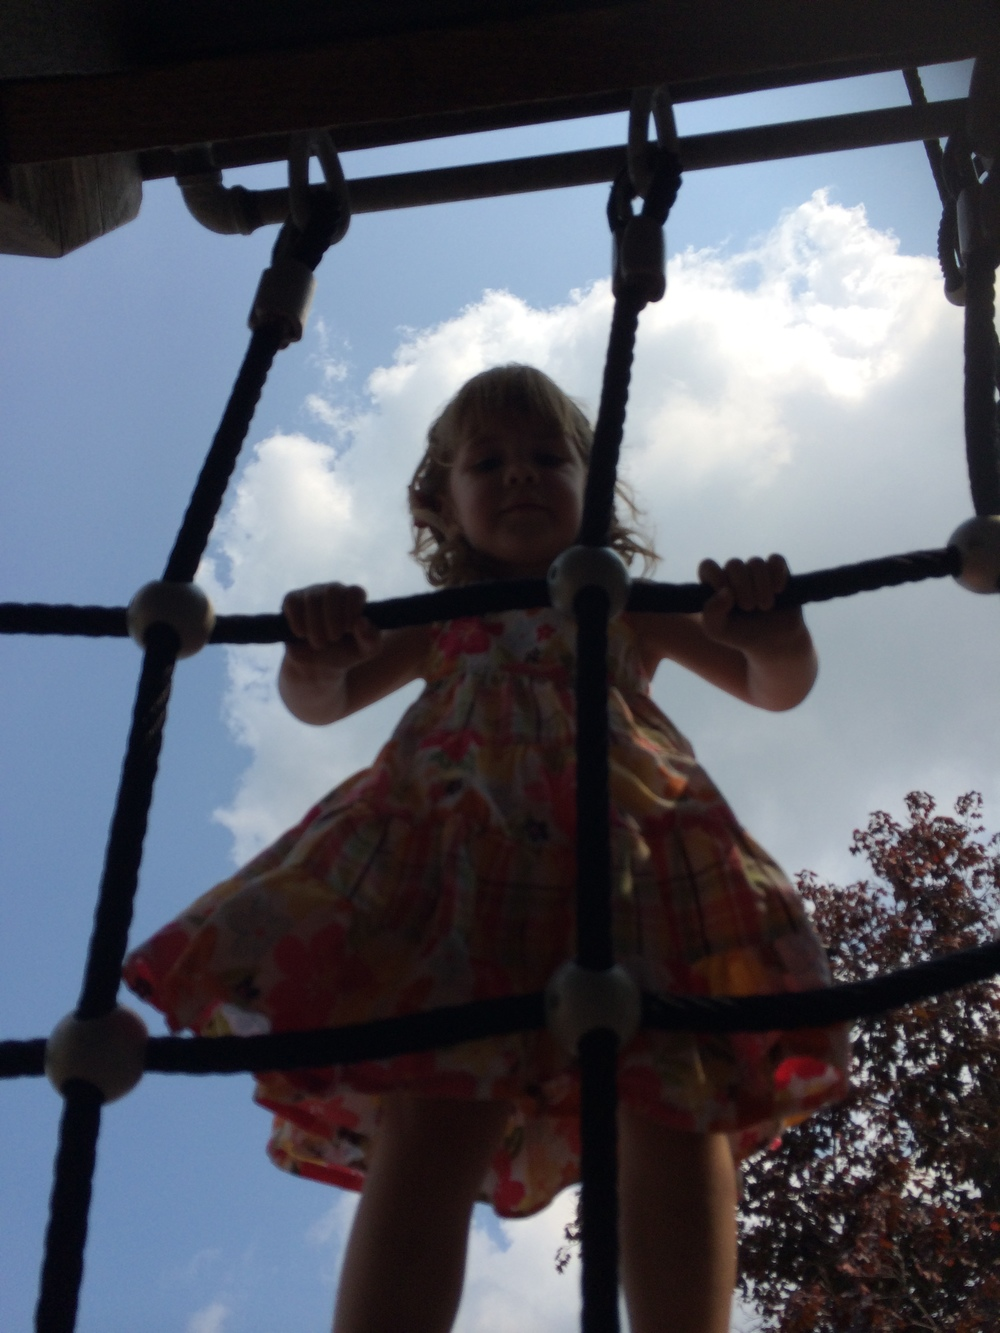 This weekend at Greenfield Village's new playground.